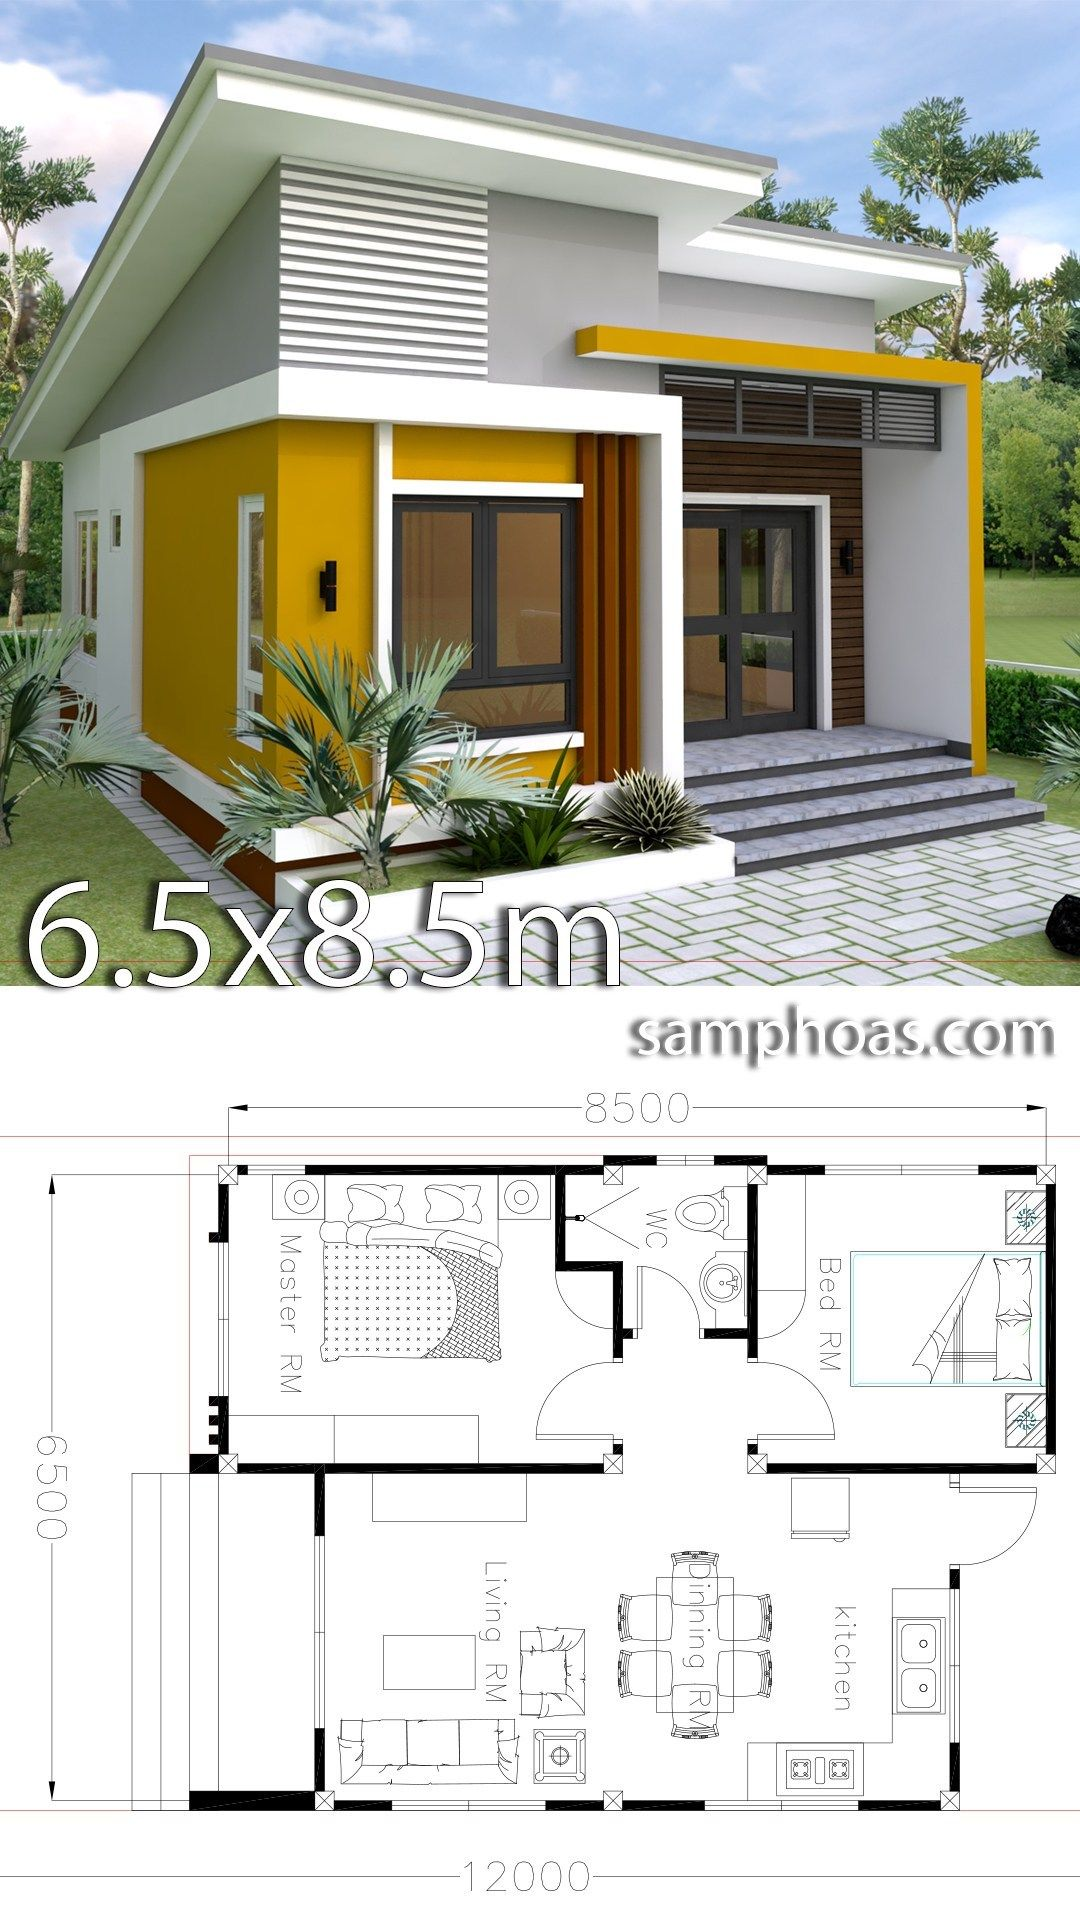 Small Home Design Plan 6 5x8 5m With 2 Bedrooms Samphoas Plansearch Small House Design Plans Simple House Design Small House Design